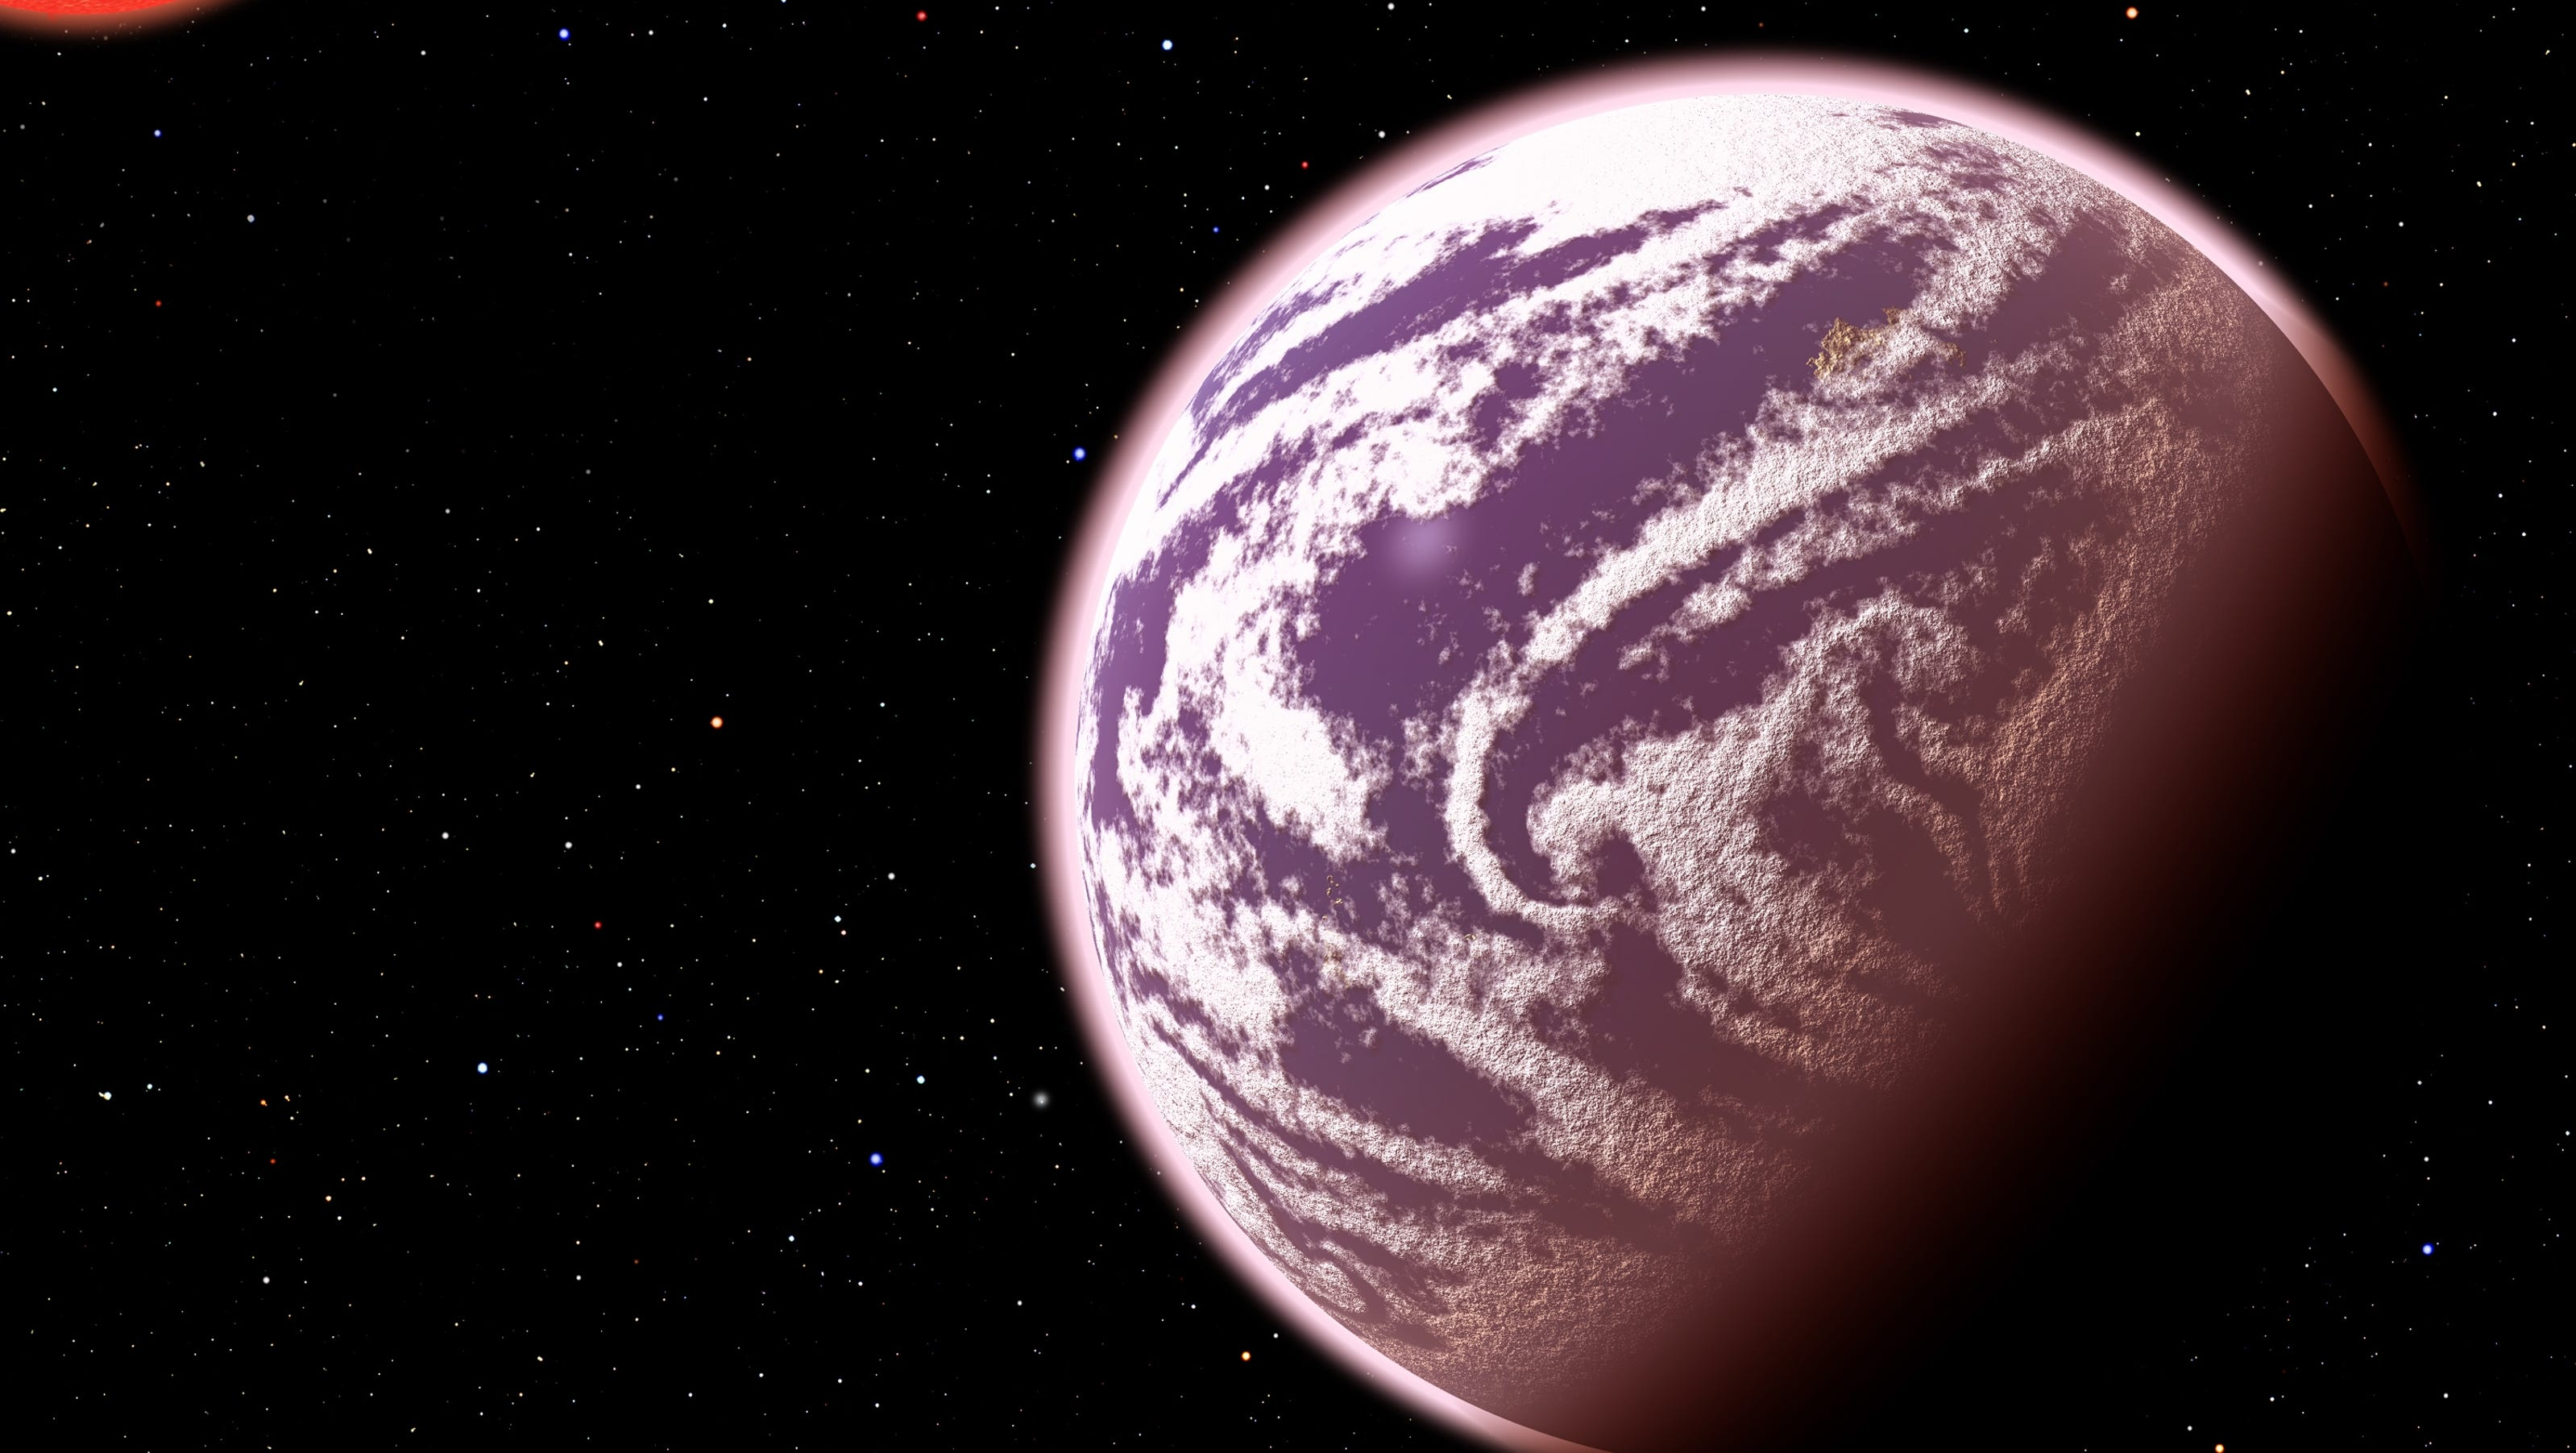 New planets not like those in our solar system